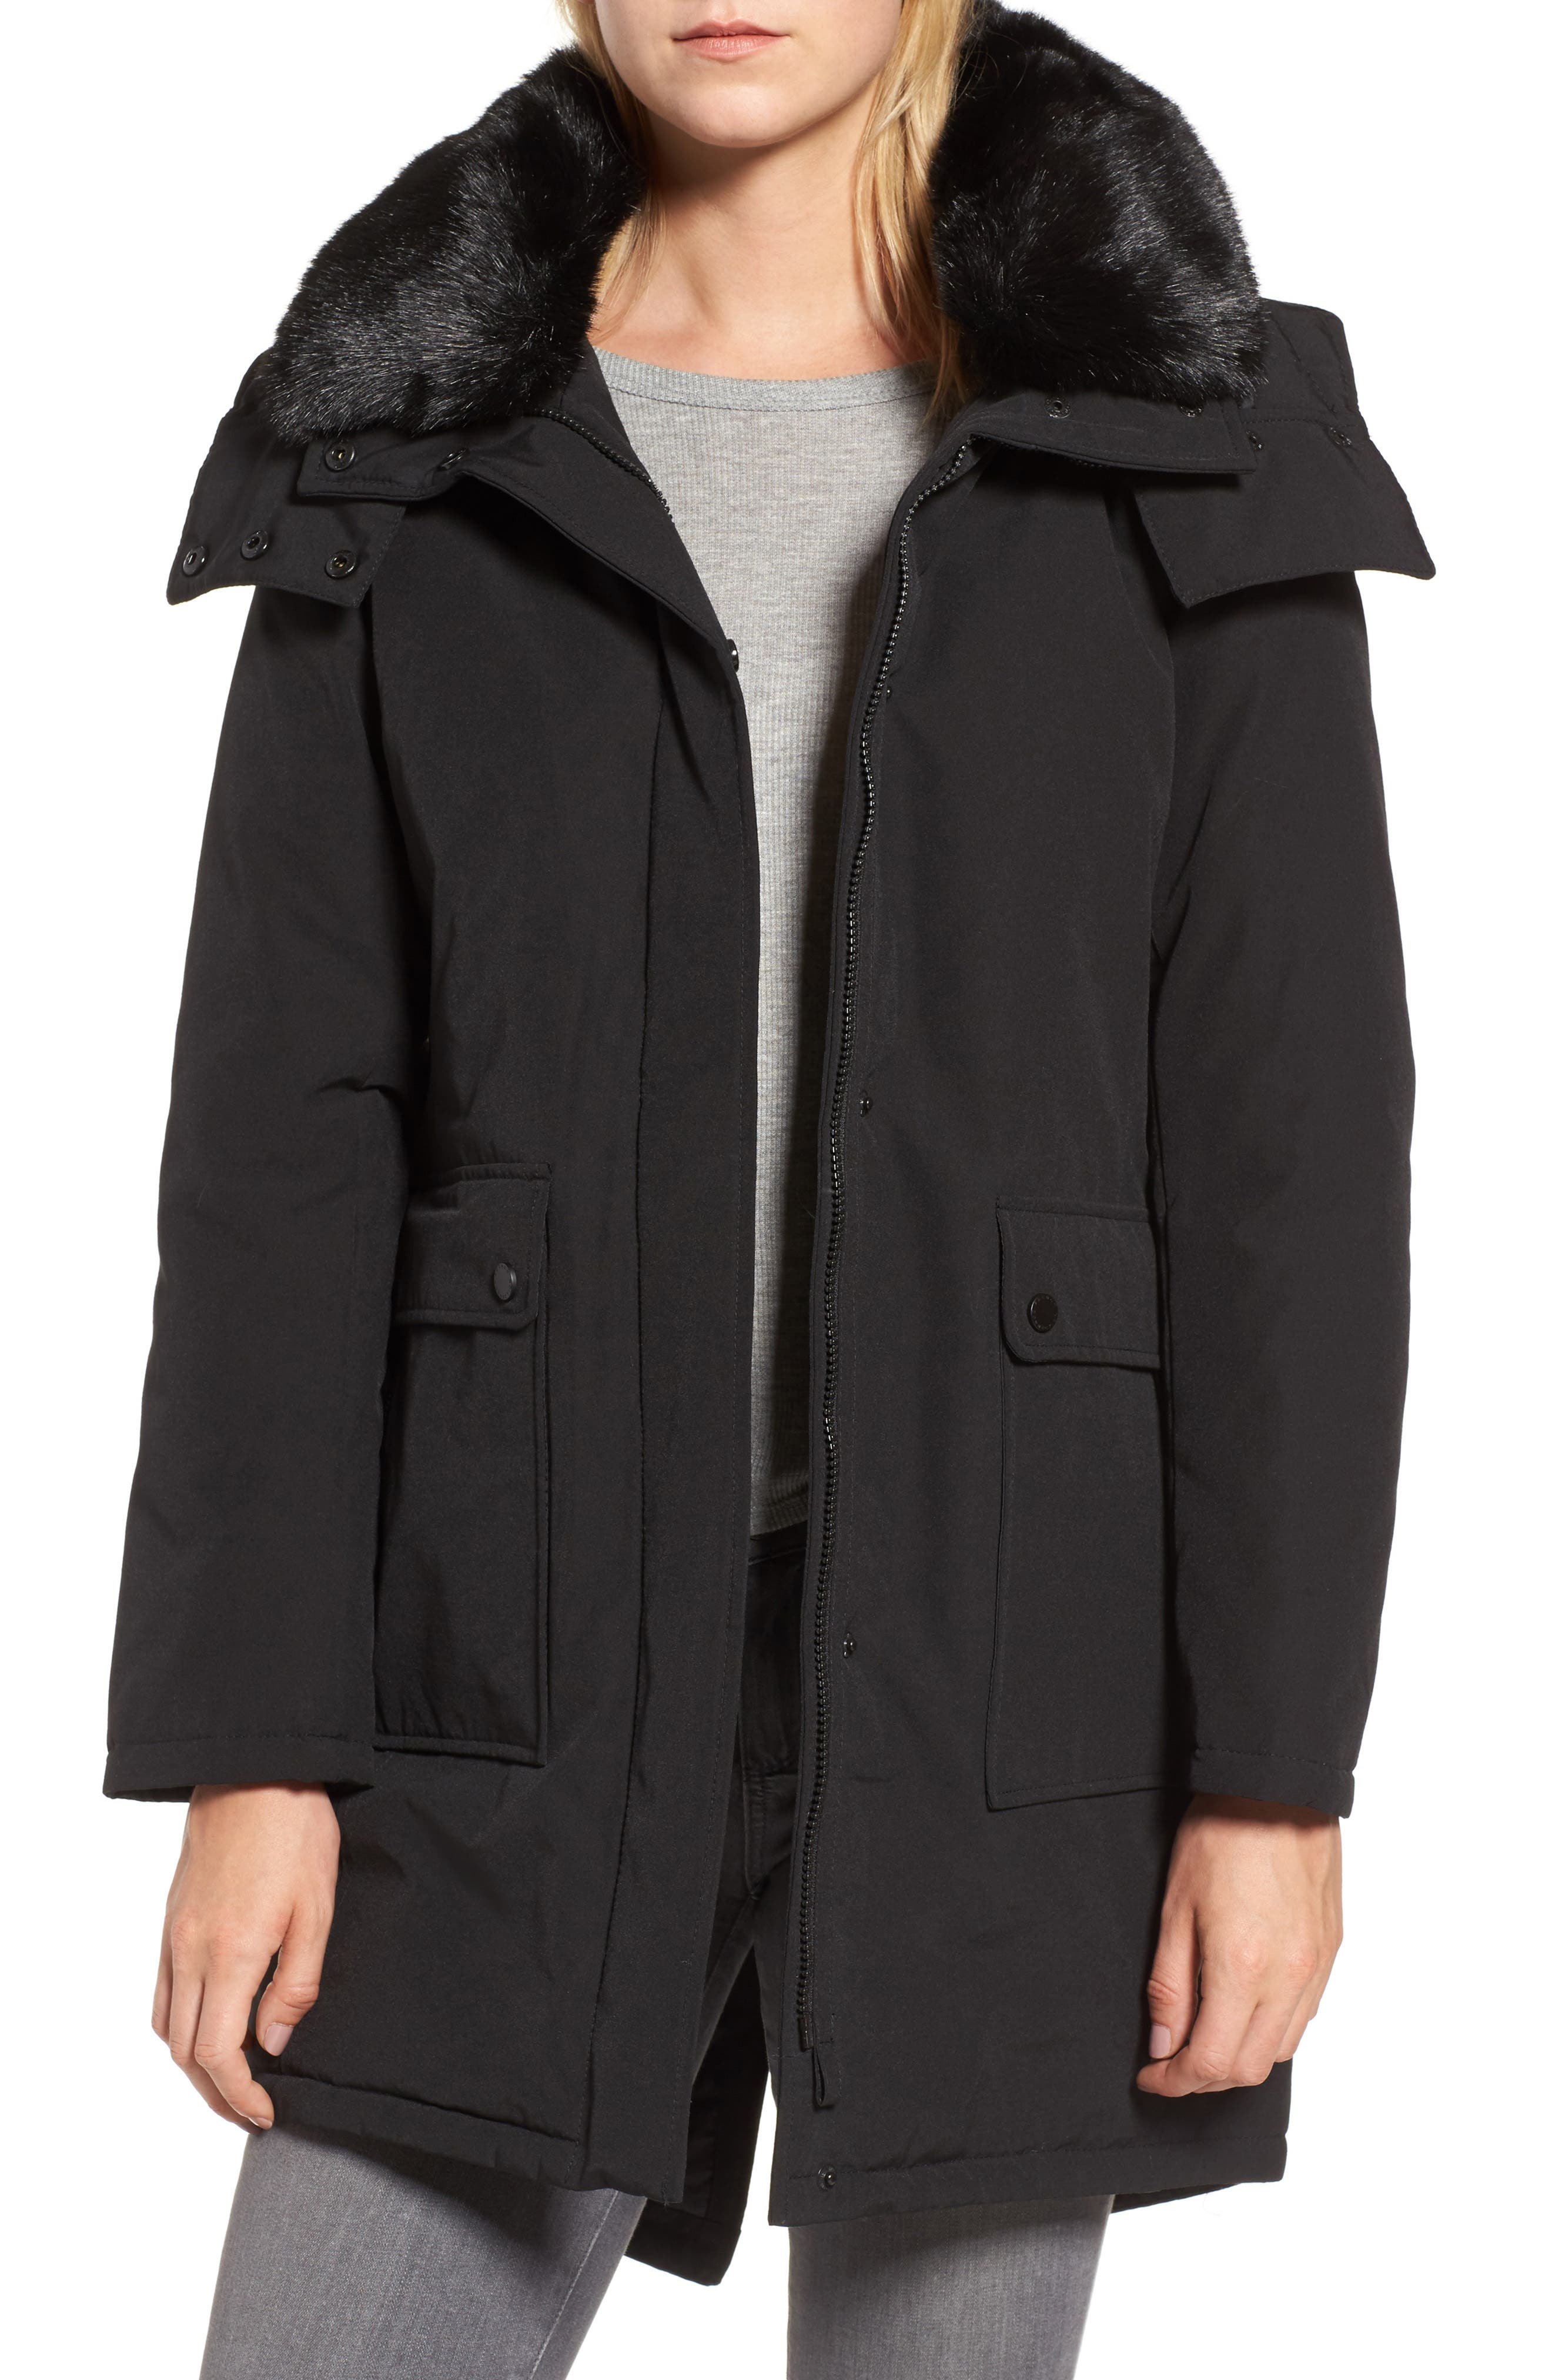 Alternate Image 1 Selected - French Connection Hooded Anorak with Detachable Faux Fur Collar